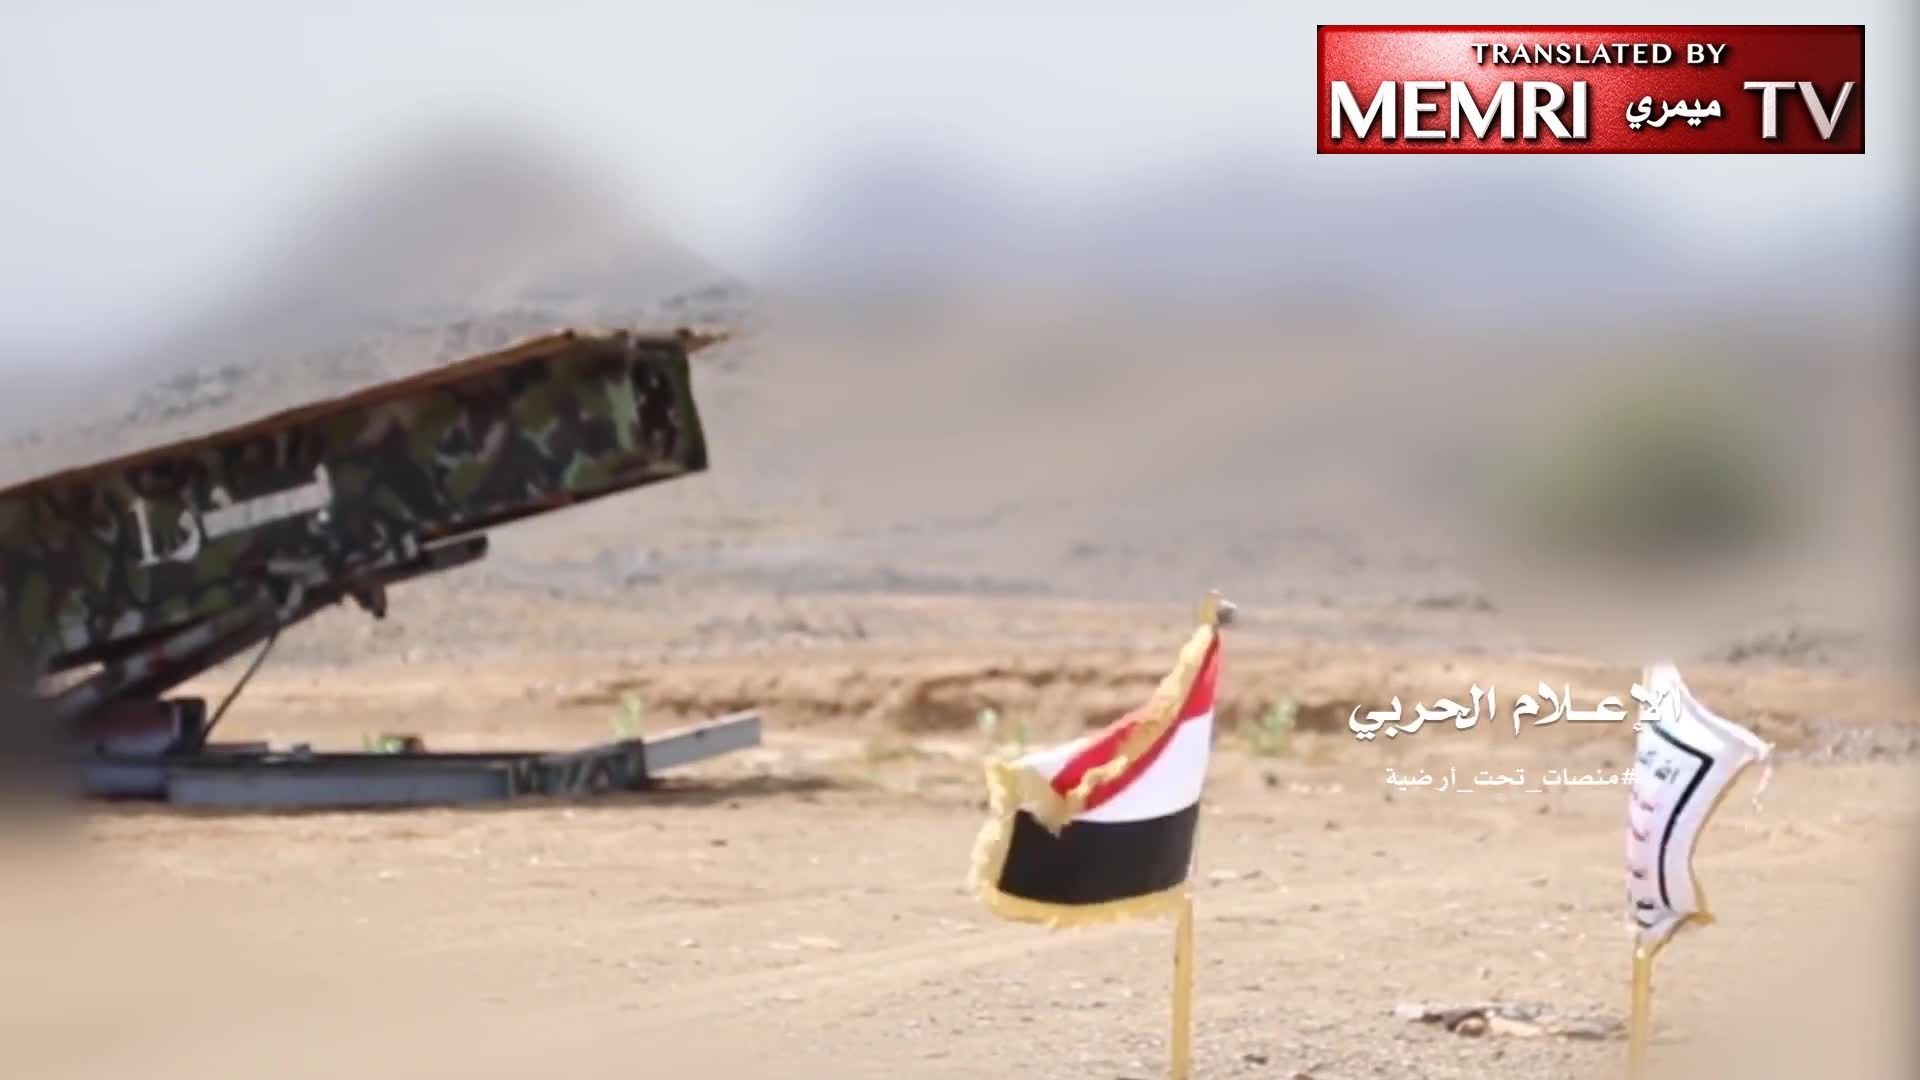 Footage of Houthi Underground Missile Launching Pads